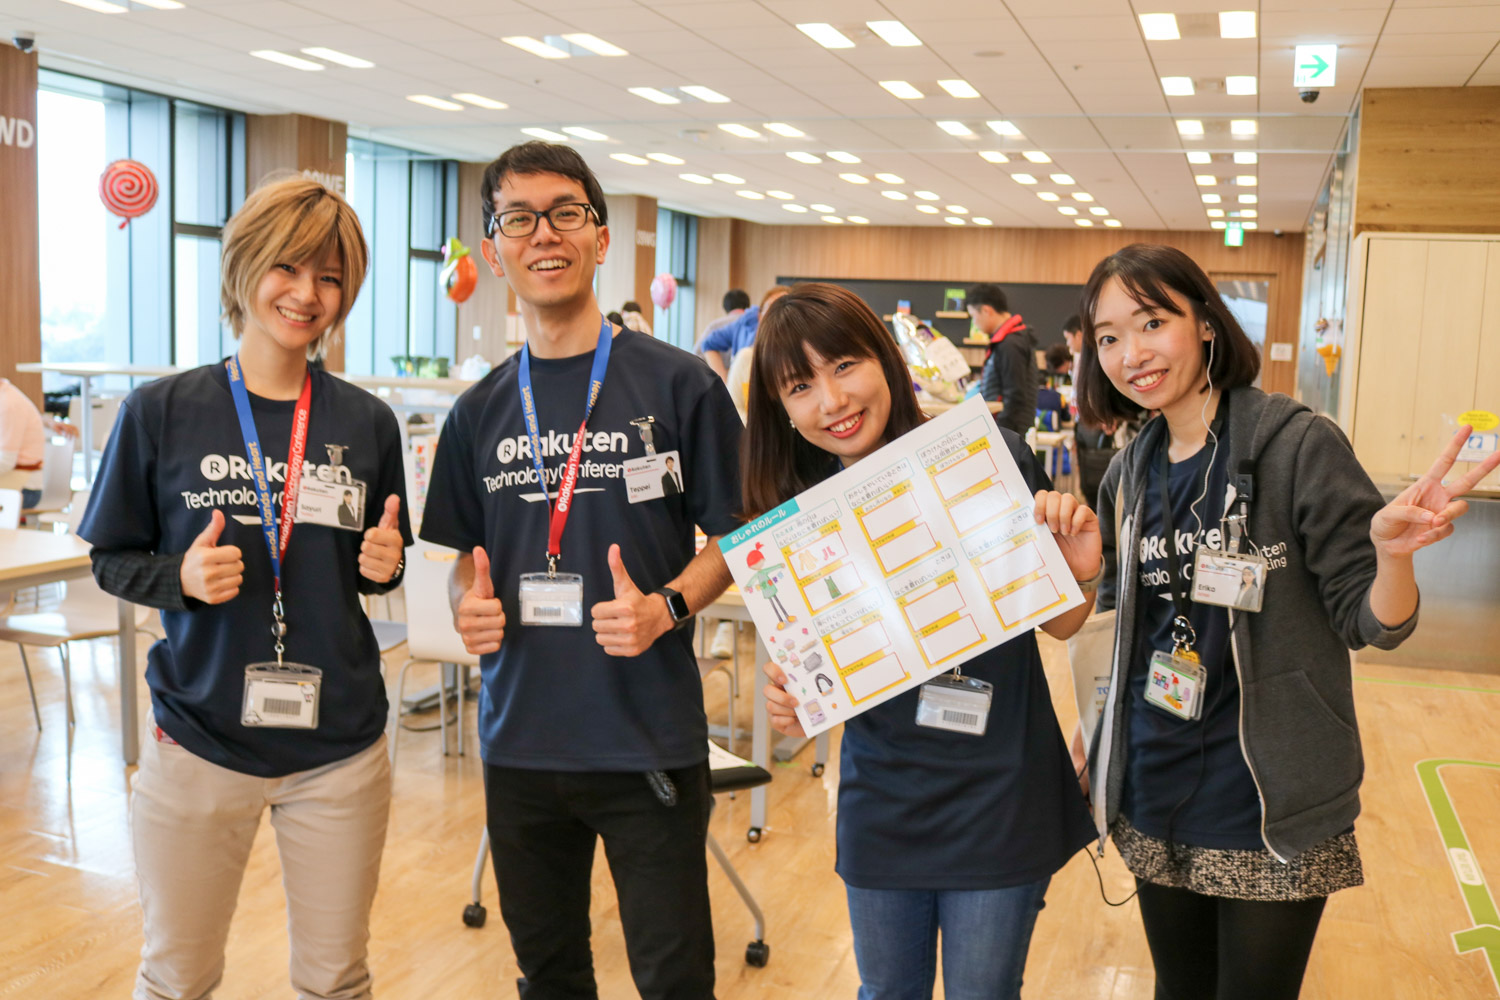 Head, hands and heart: Highlights from Rakuten Tech Conference 2017